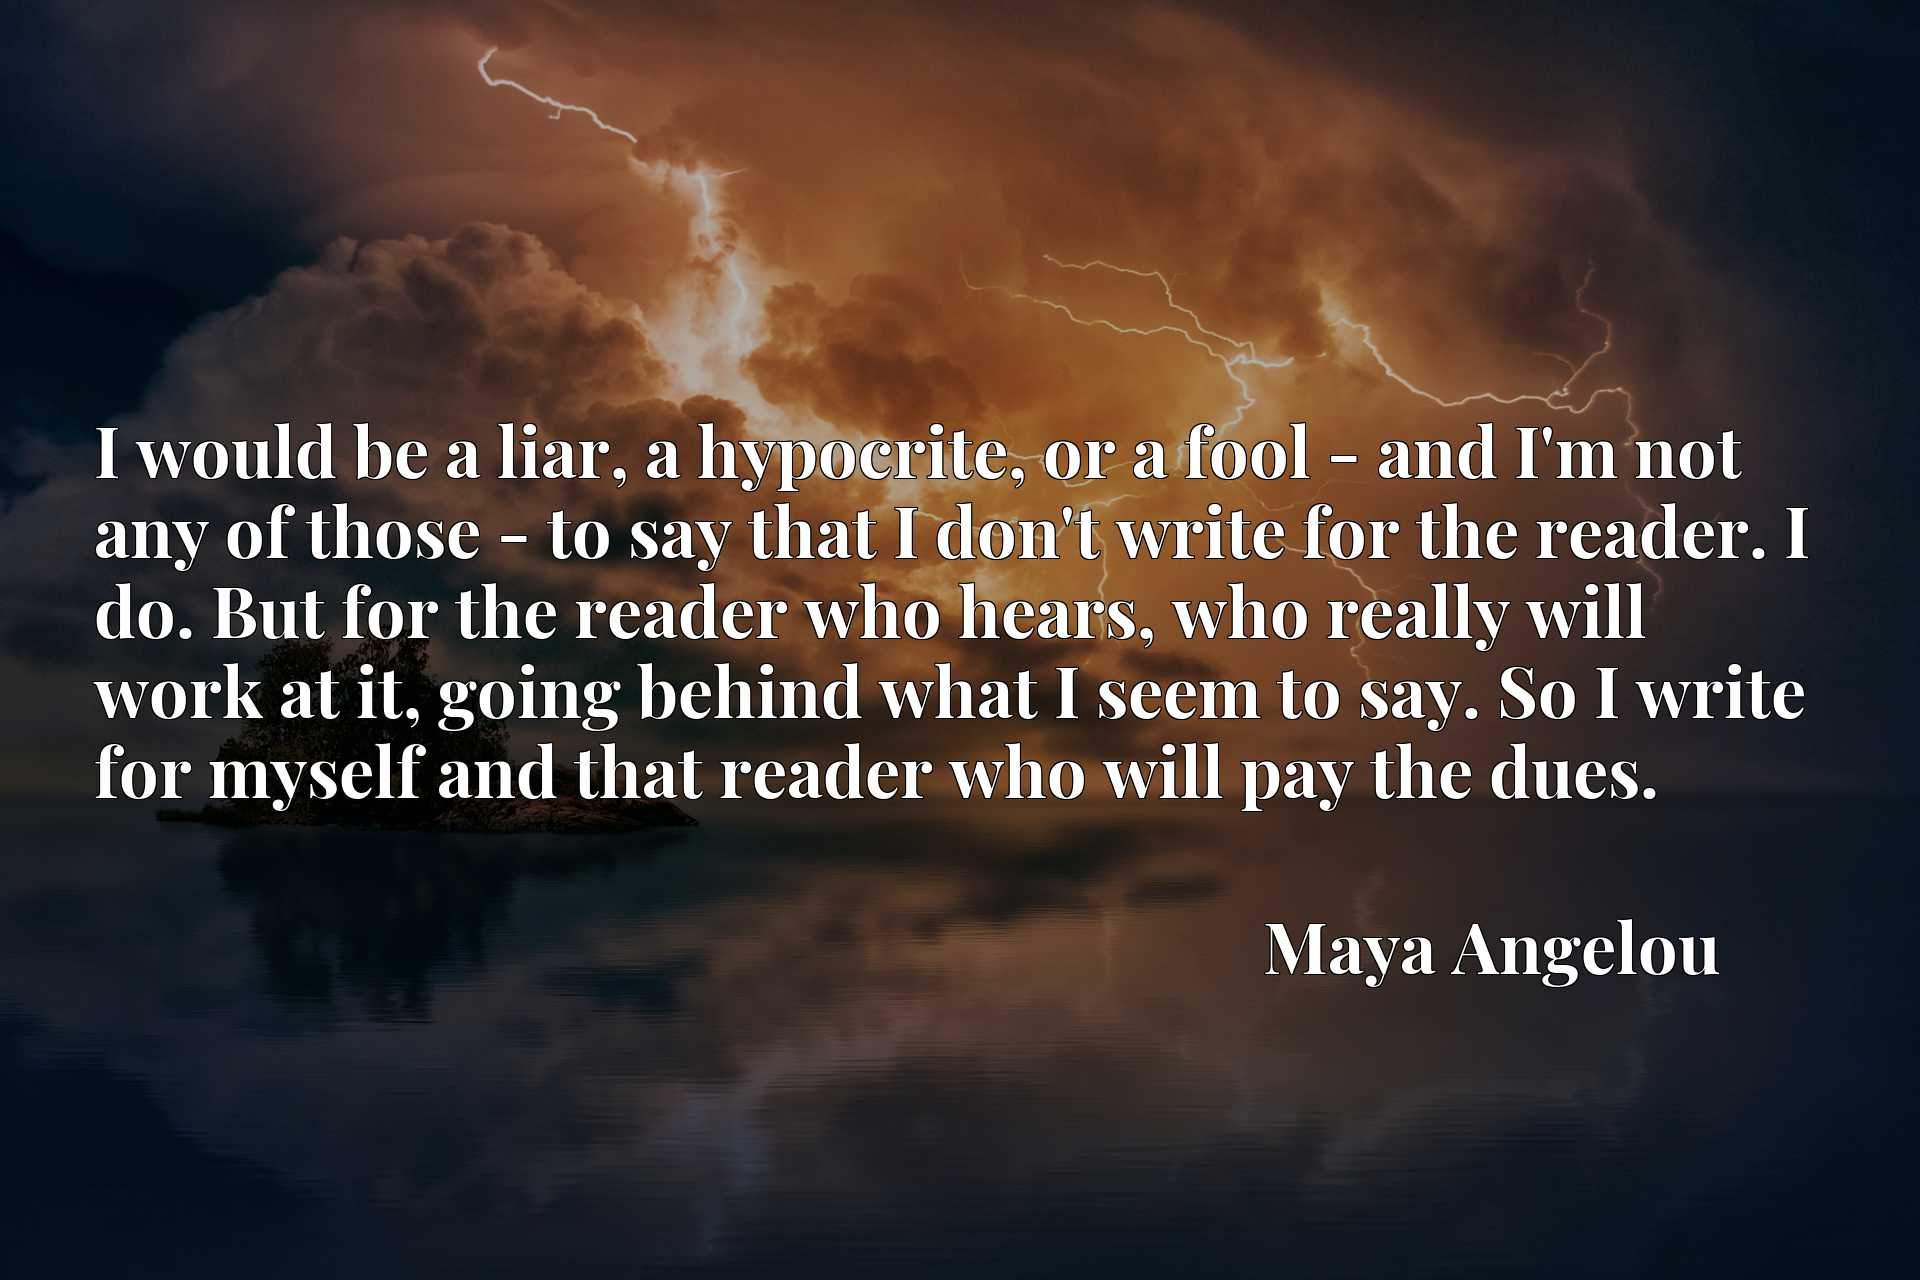 I would be a liar, a hypocrite, or a fool - and I'm not any of those - to say that I don't write for the reader. I do. But for the reader who hears, who really will work at it, going behind what I seem to say. So I write for myself and that reader who will pay the dues.